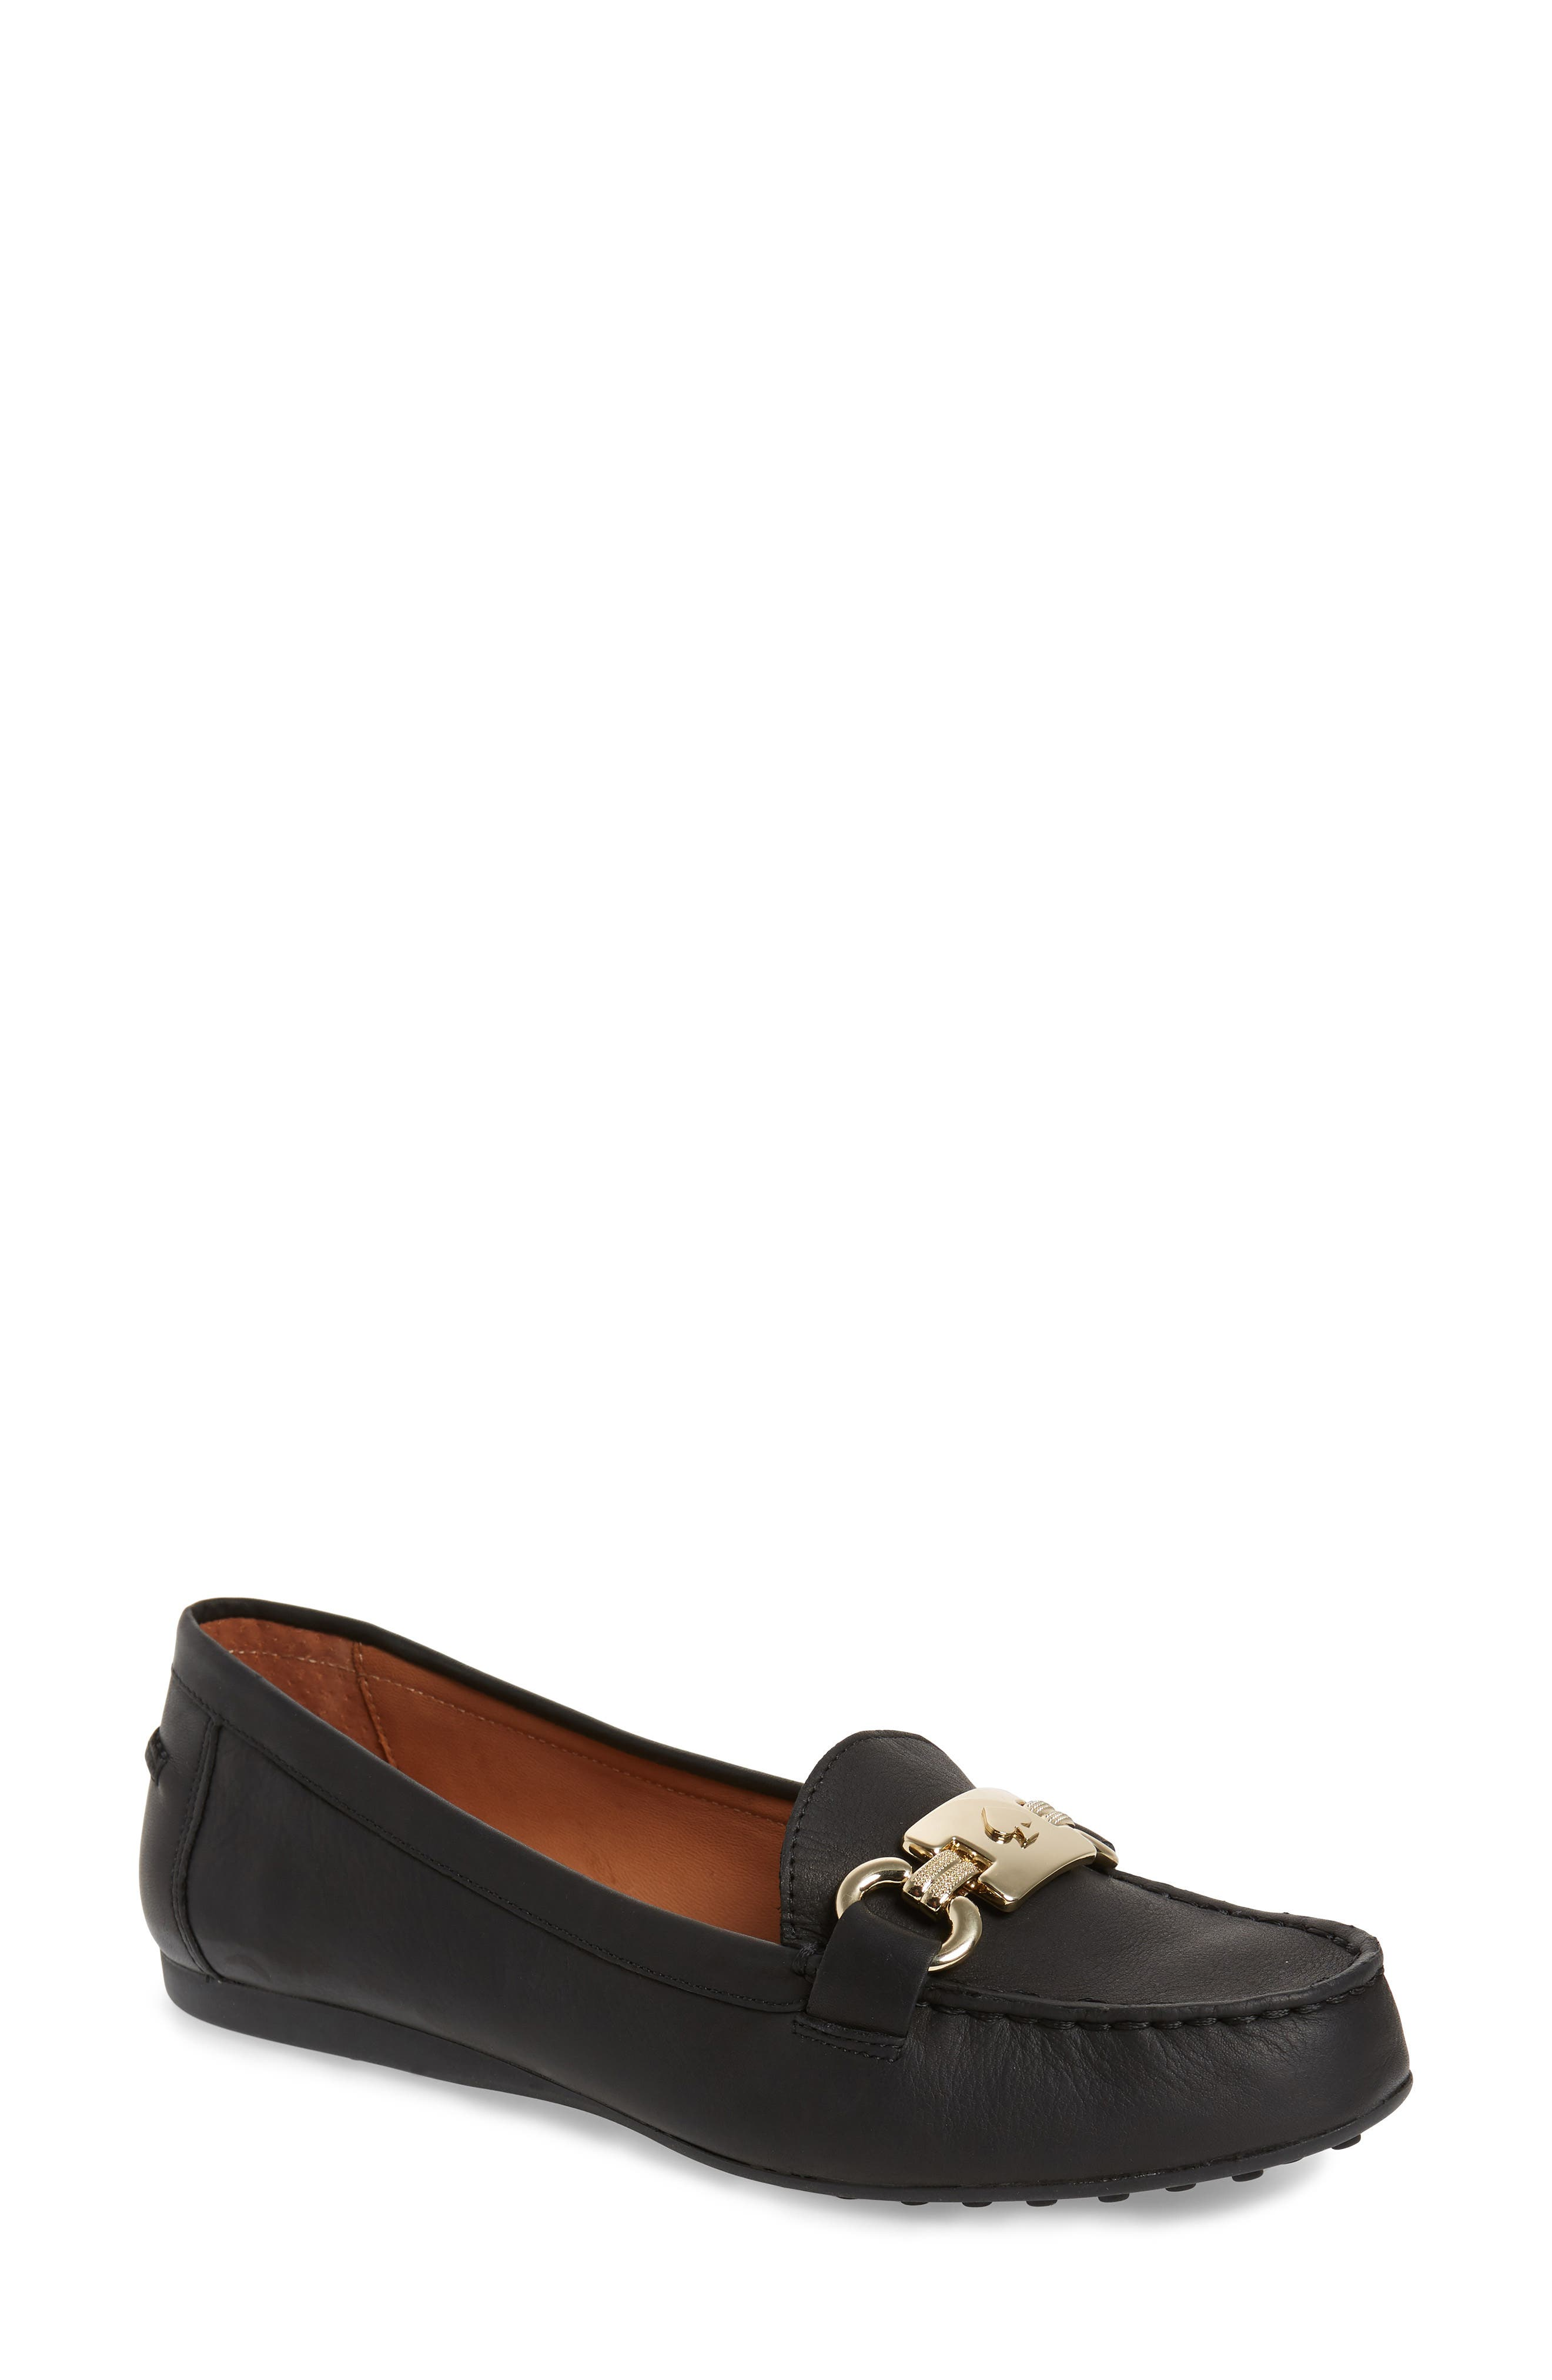 Carson Loafer in Black Soft Calf